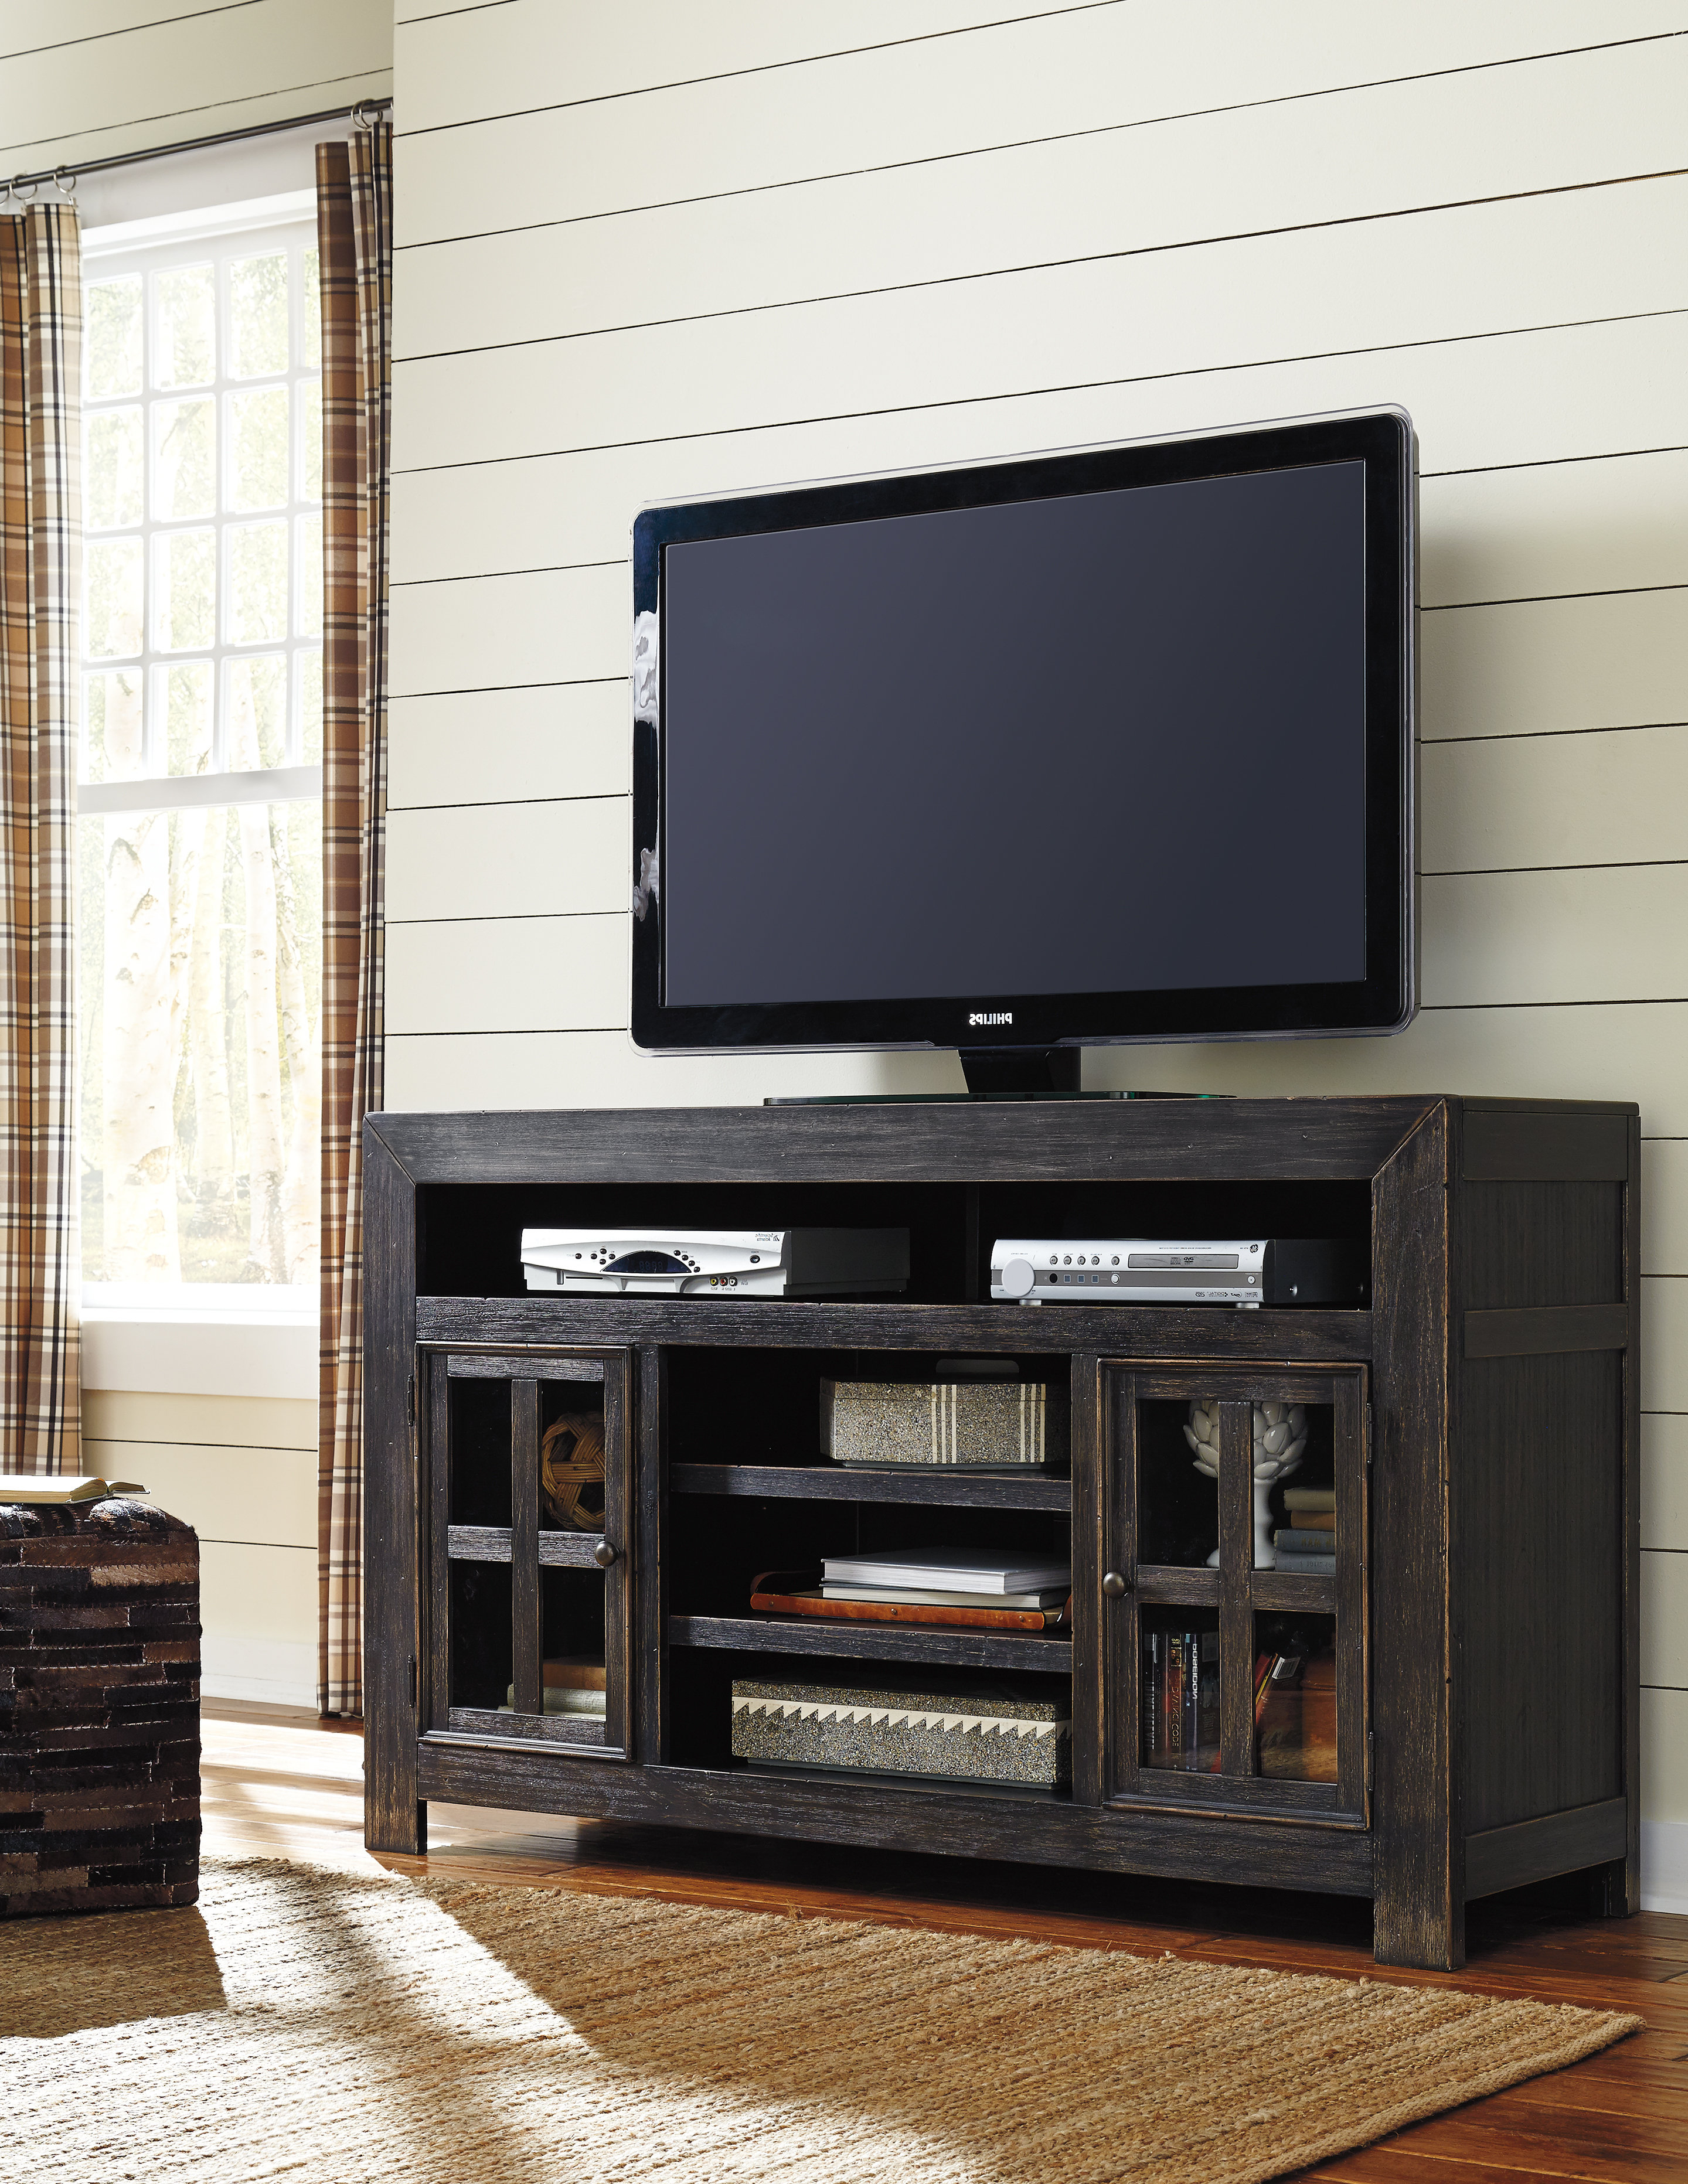 60 69 Inch Tv Stands You'll Love | Wayfair (View 9 of 20)